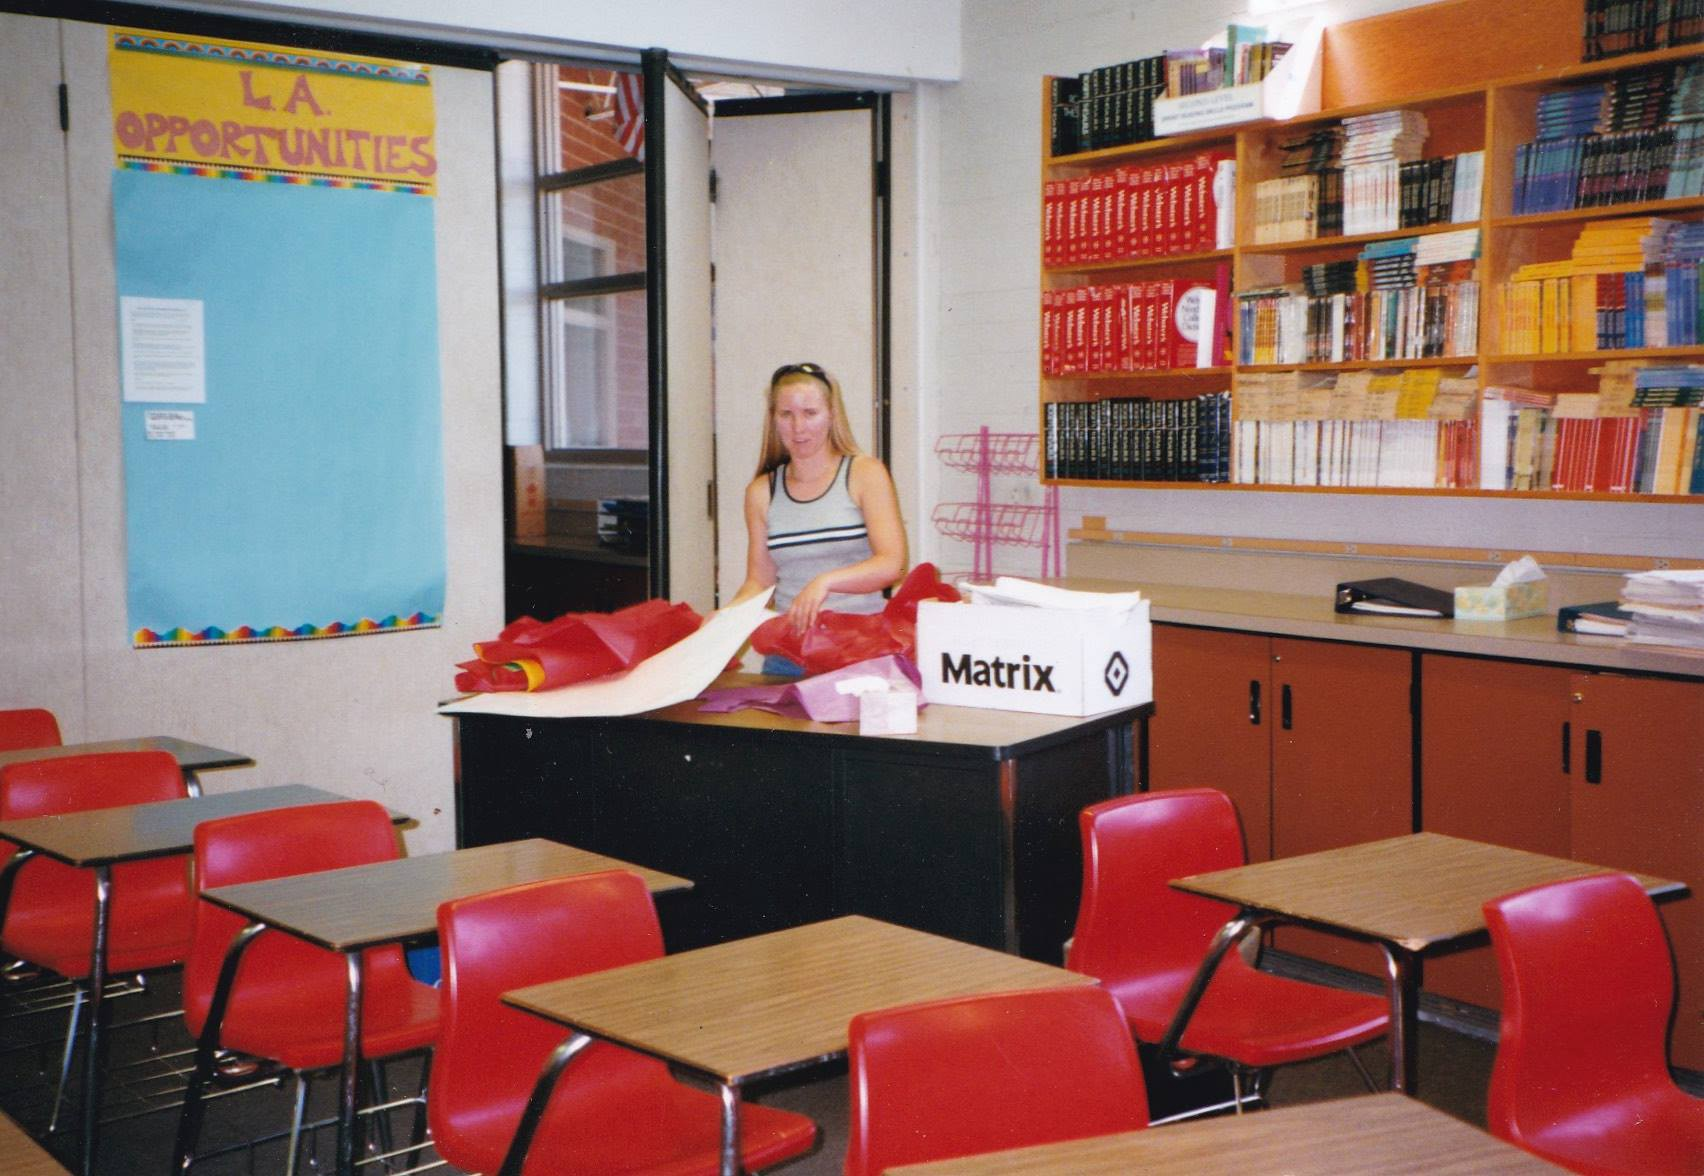 The author in her first classroom before the start of the school year